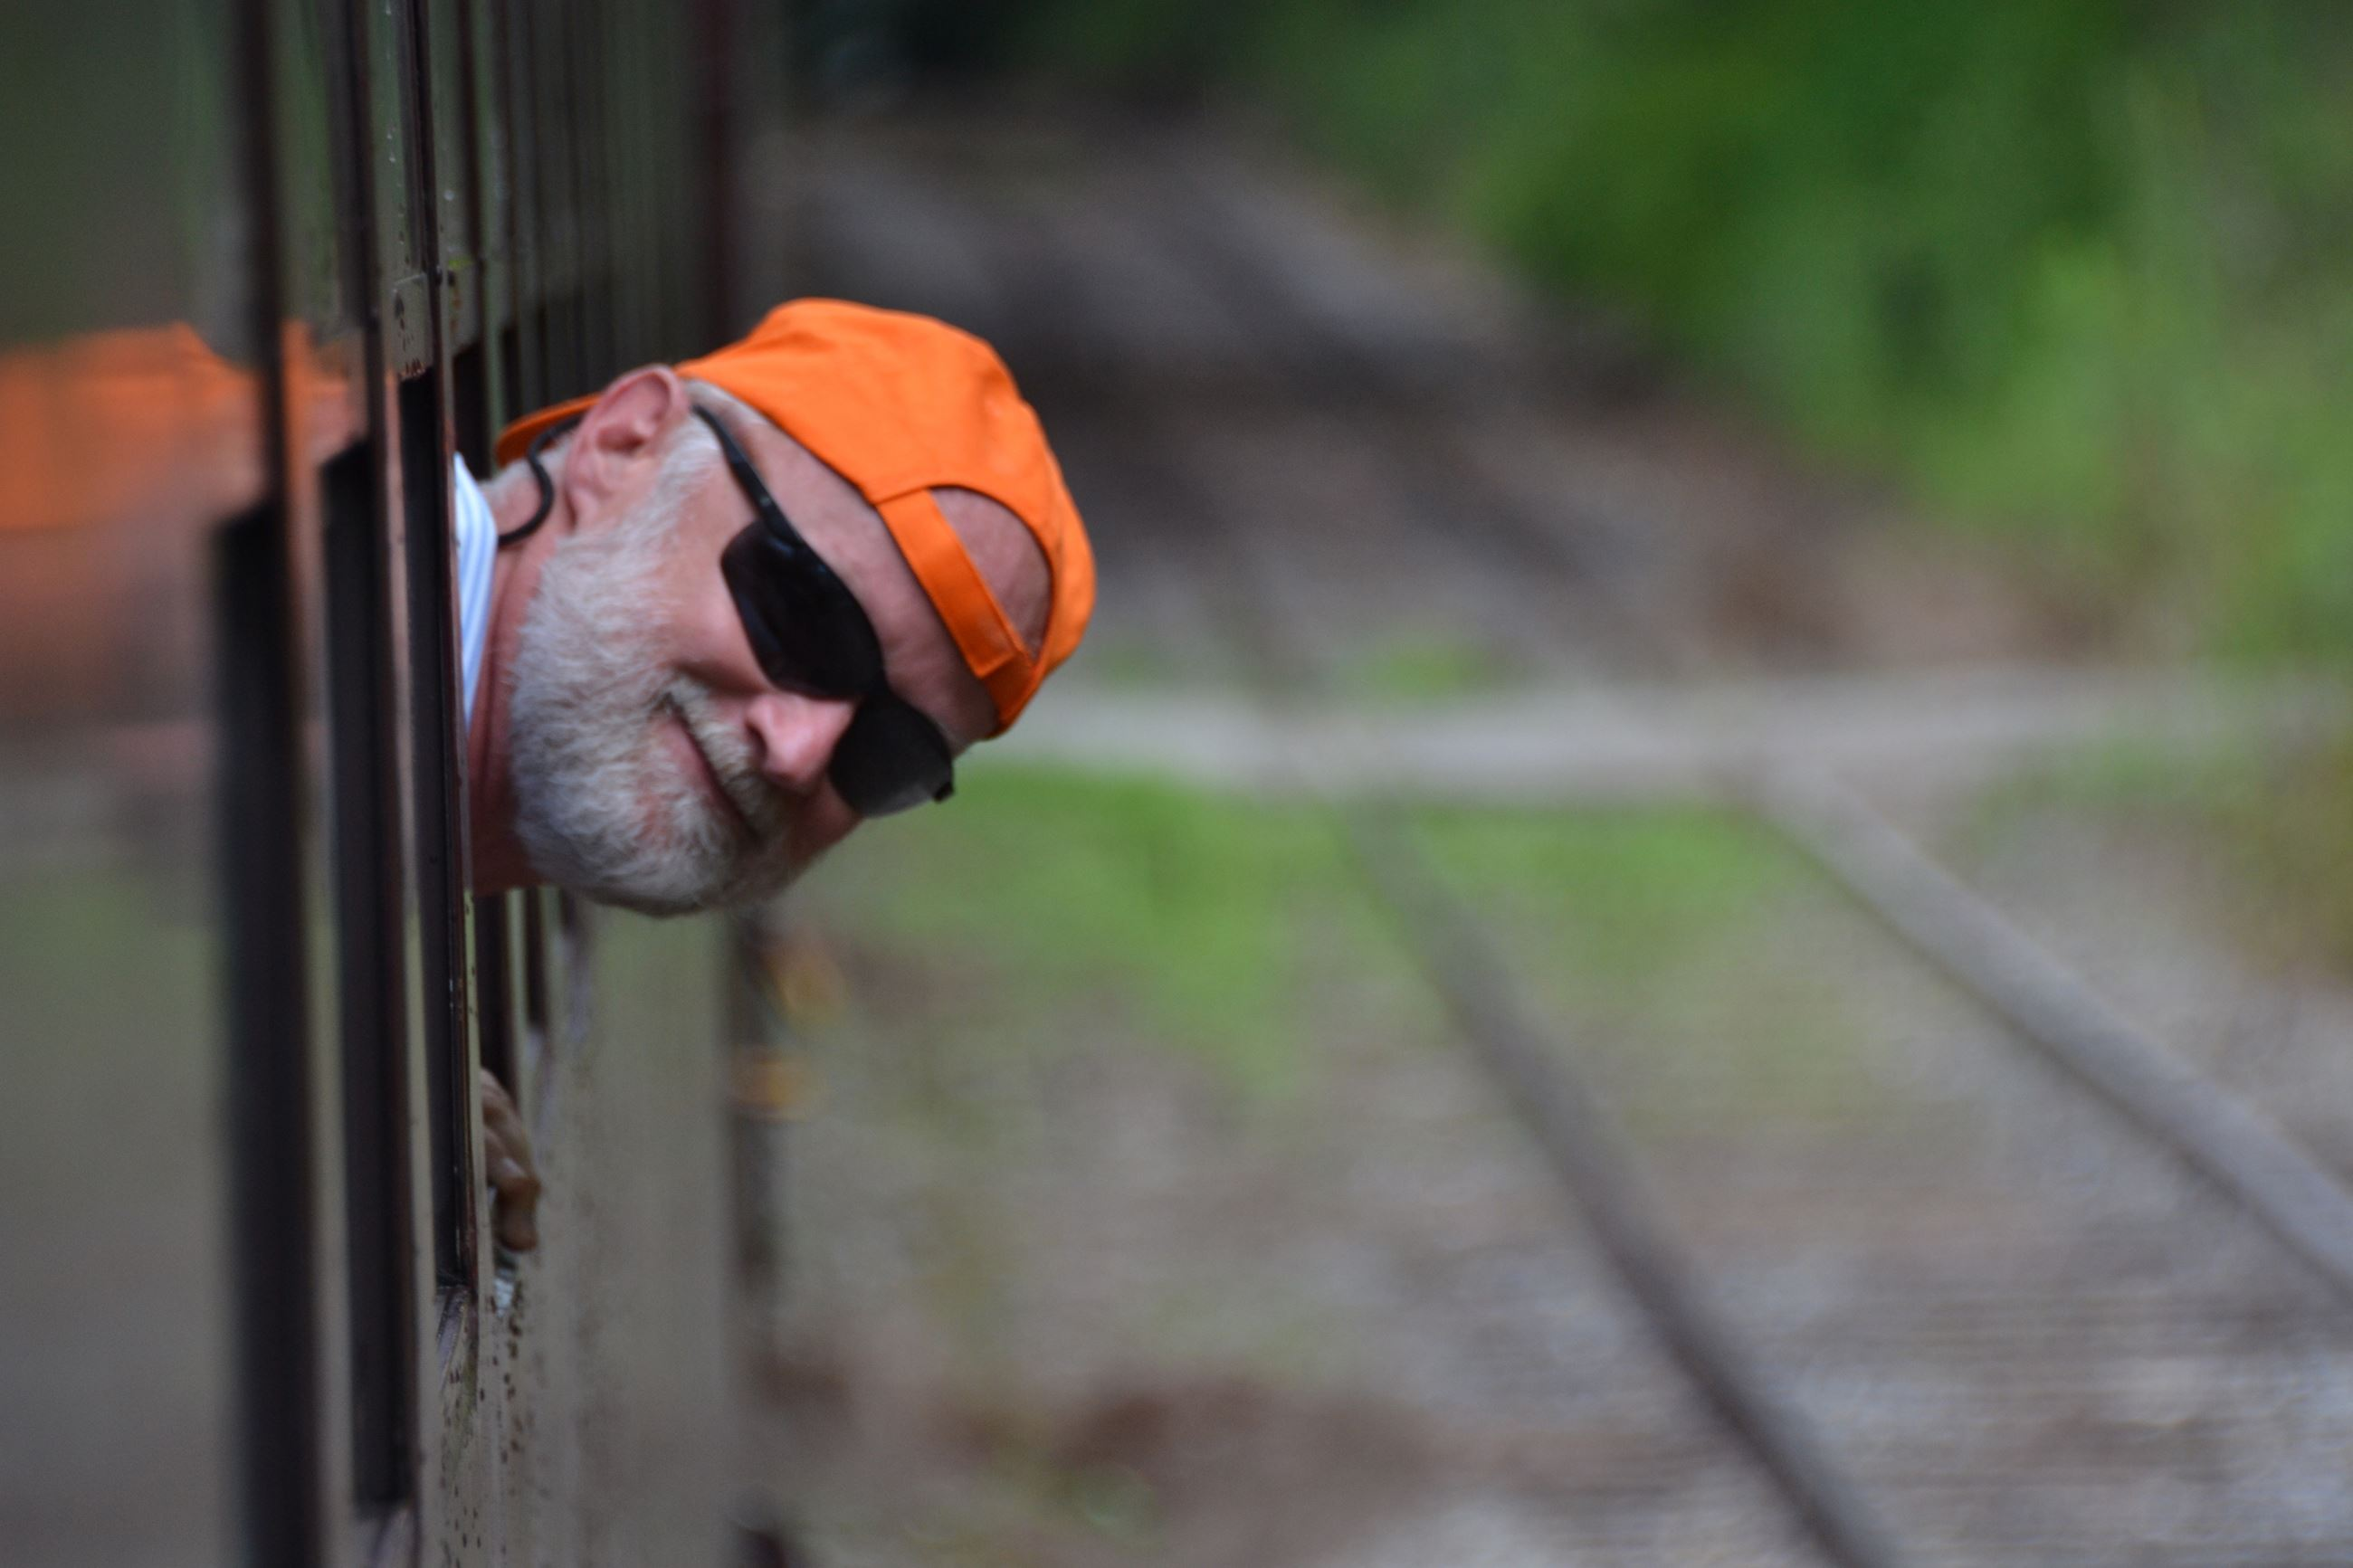 Image of a smiling man in an orange cap peaking his head out of a train window